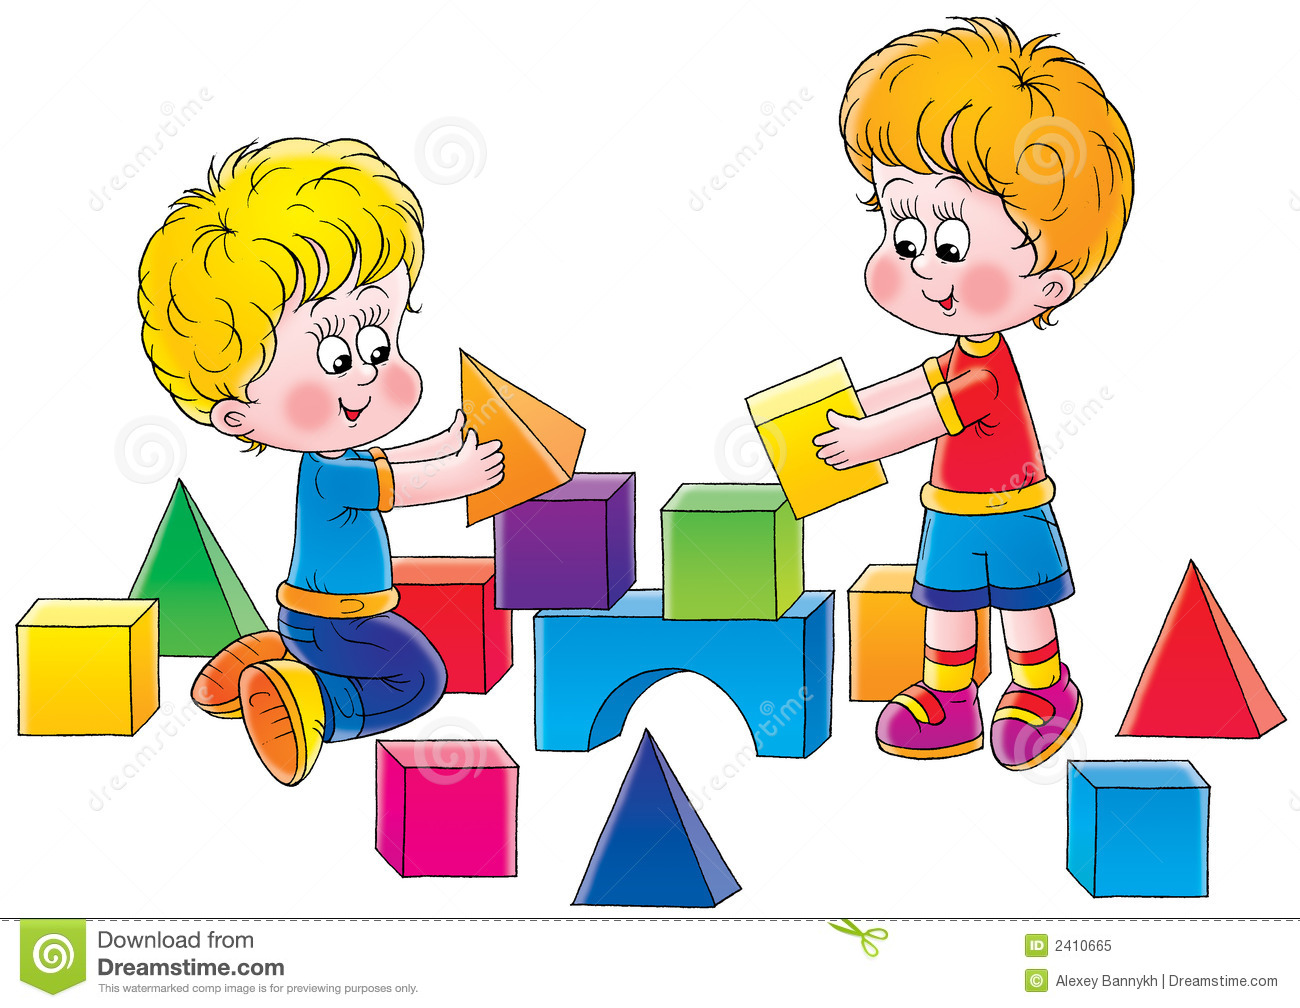 Isolated Clip Art And Children .-Isolated Clip Art And Children .-2